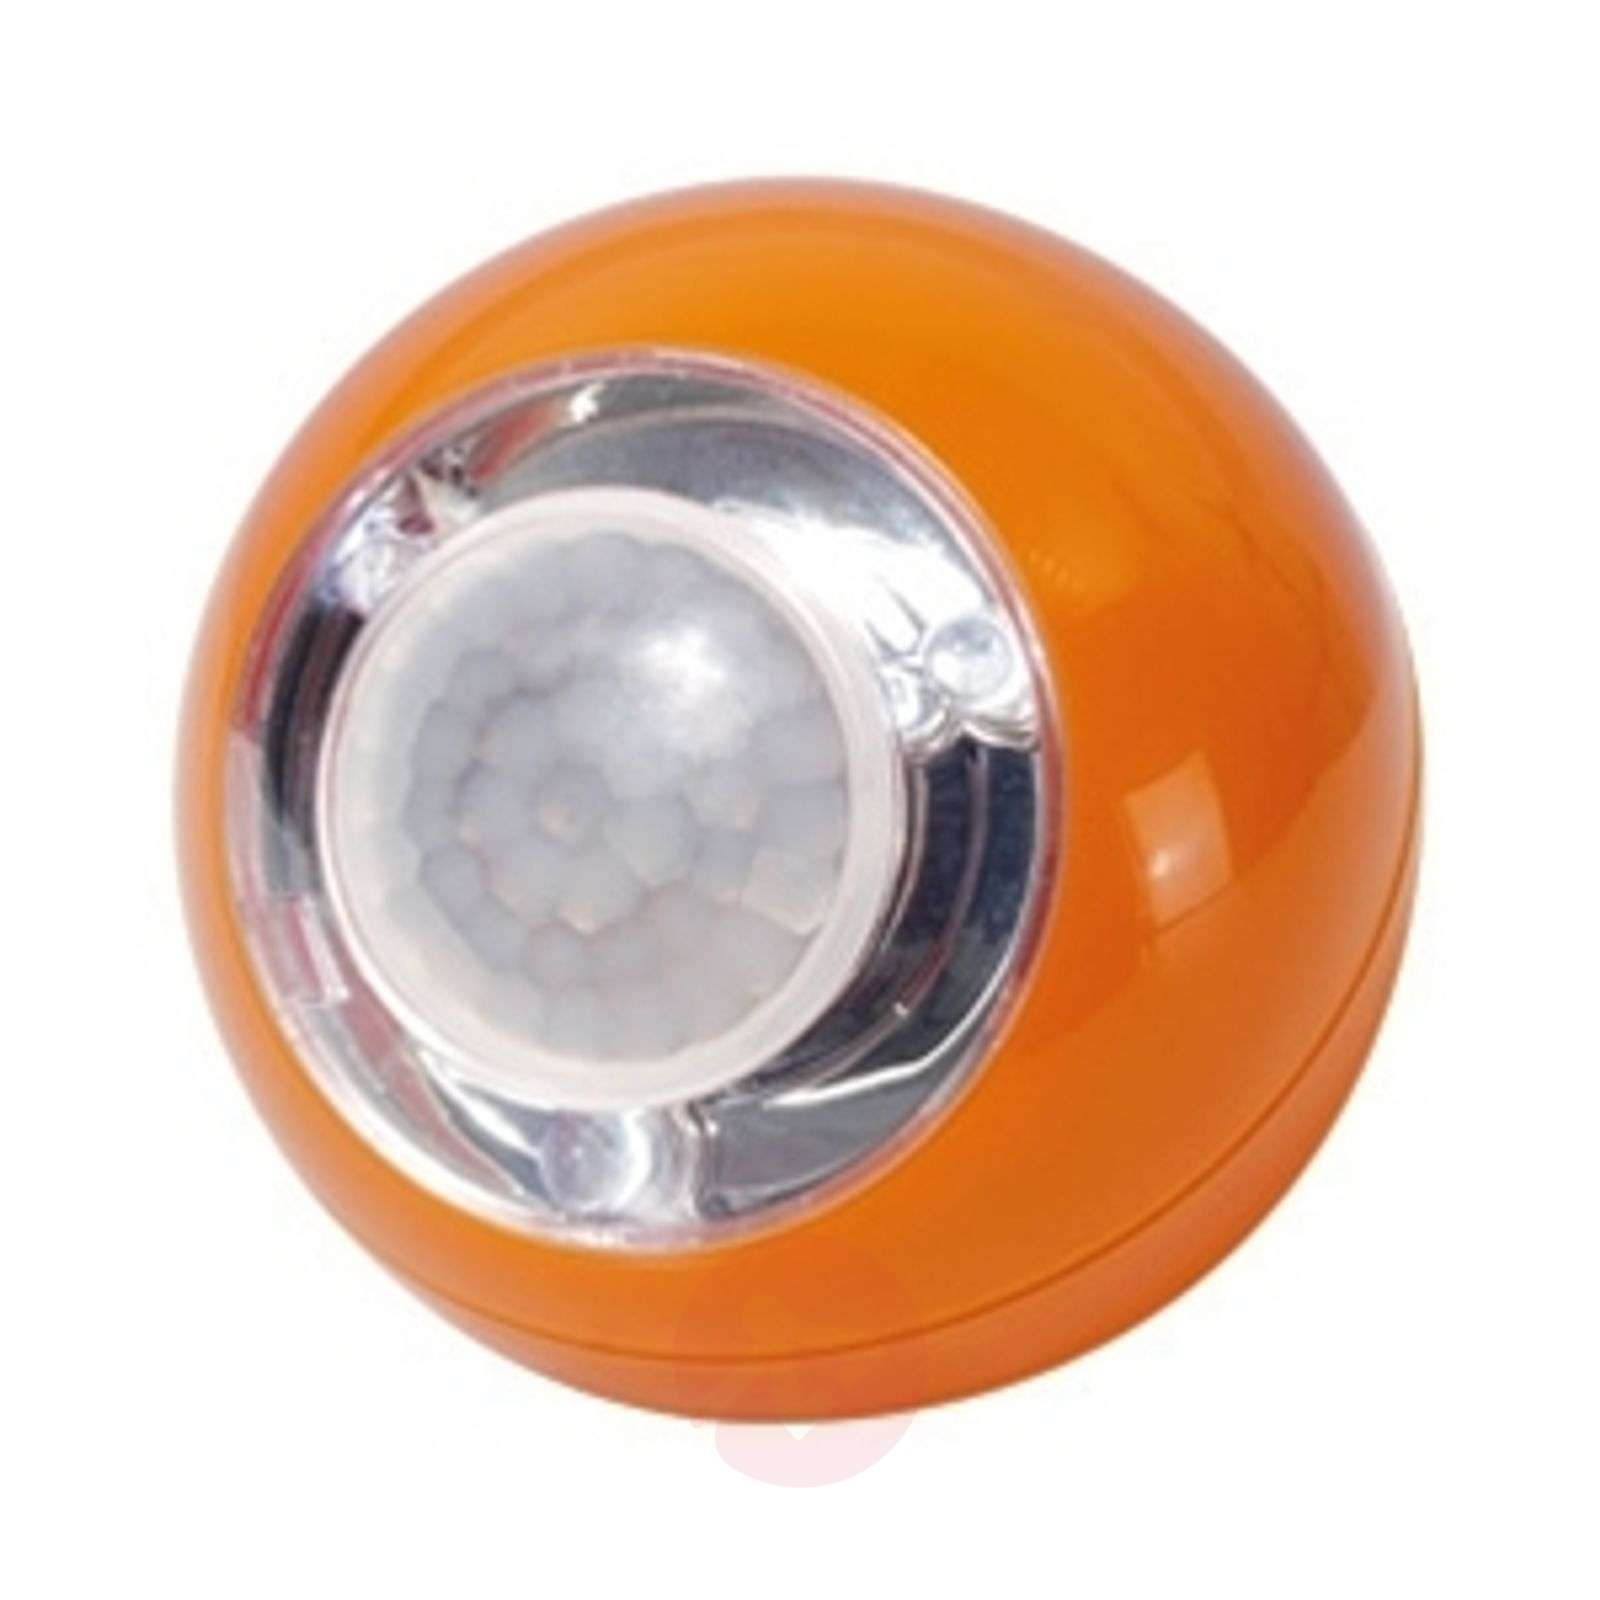 Trendy LED-spot lichtbol LLL 120degree-4013031X-01